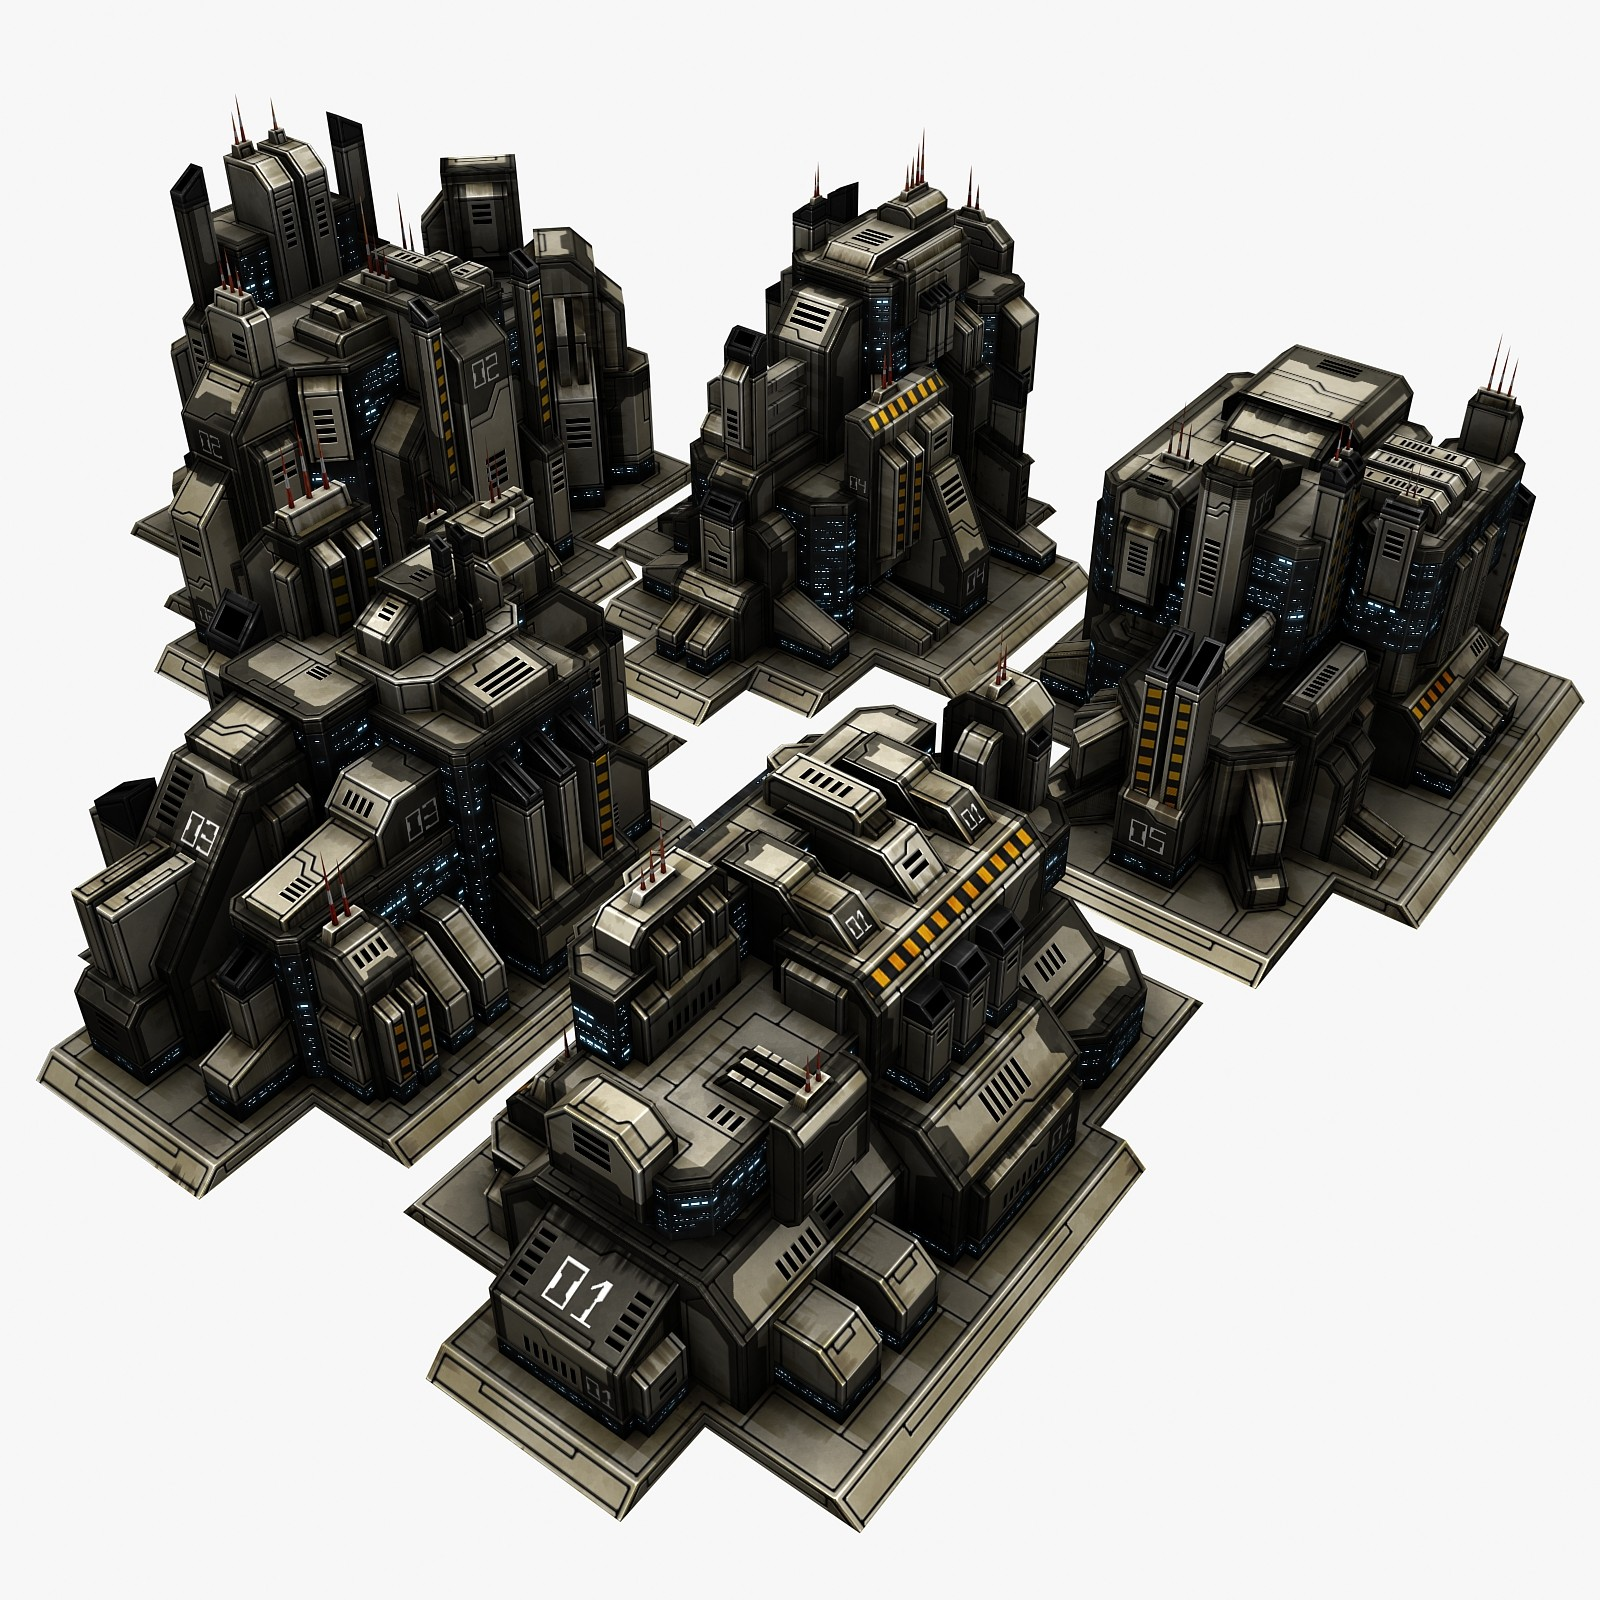 3d model of sci-fi city 5 buildings